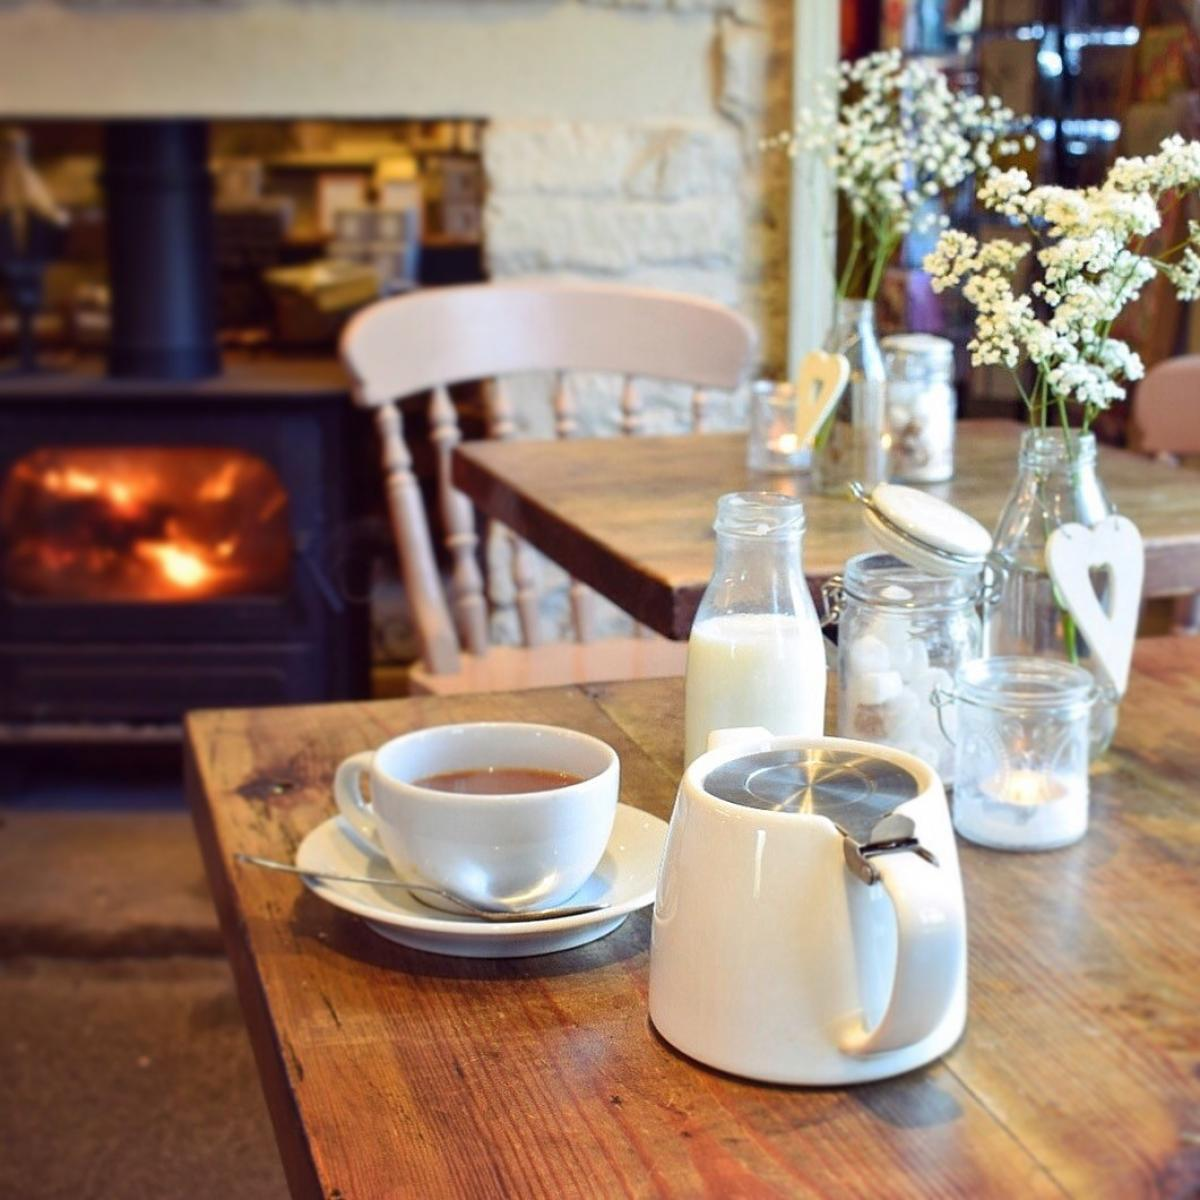 Images from Leadenham Teahouse